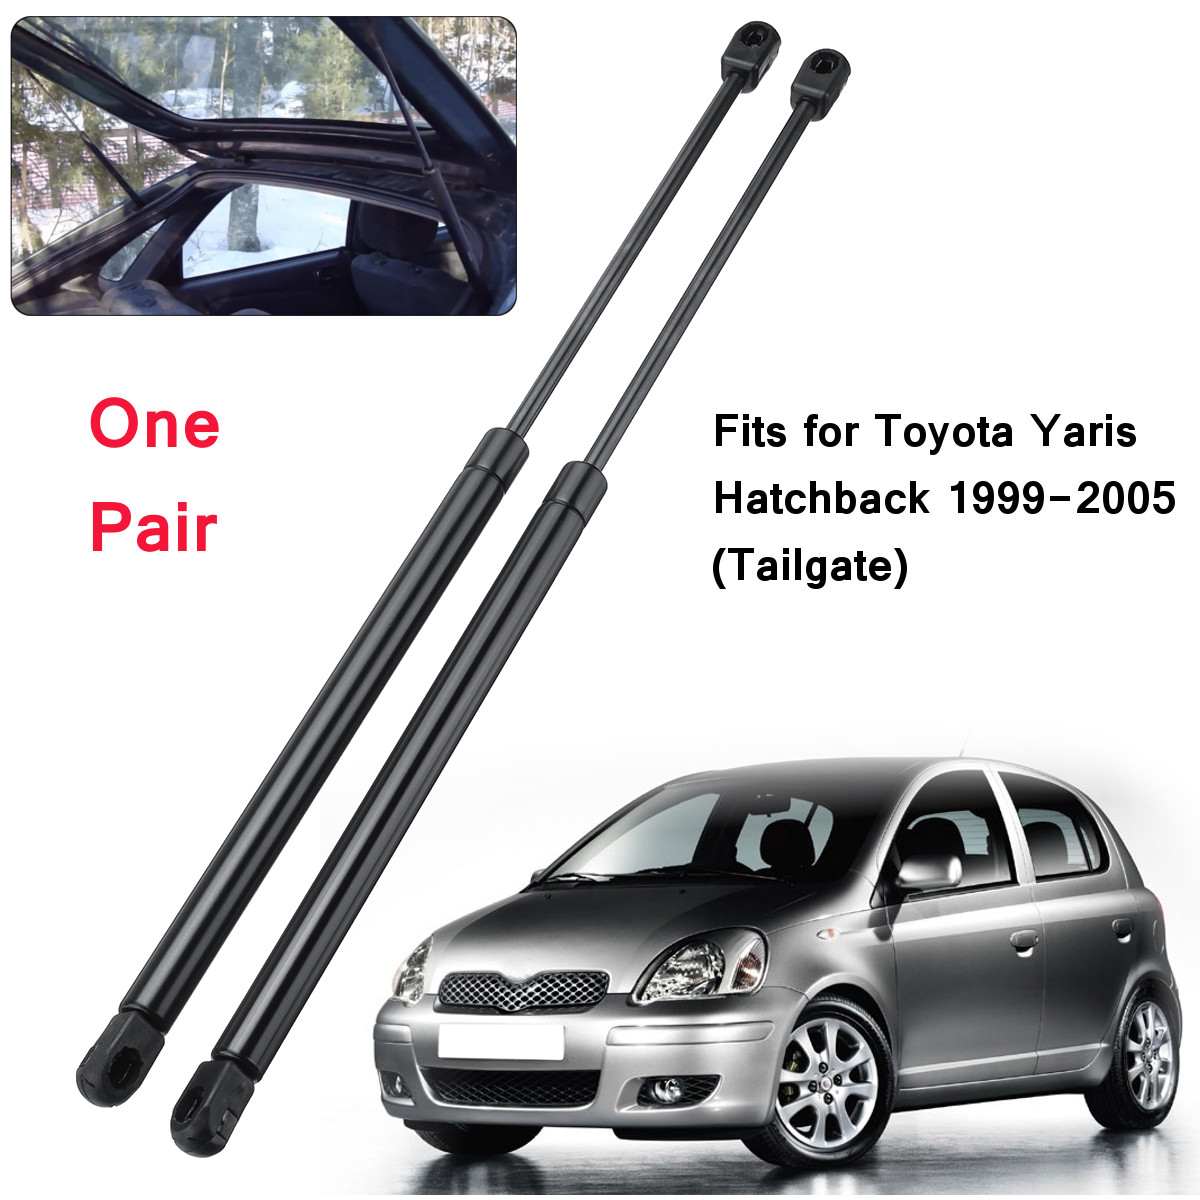 2pcs Posteriore Tronco Portellone Boot Struts Gas Ascensore Supporto 6895009110 Per Toyota Yaris Hatchback 1999 2000 2001 2002 2003 2004 2005